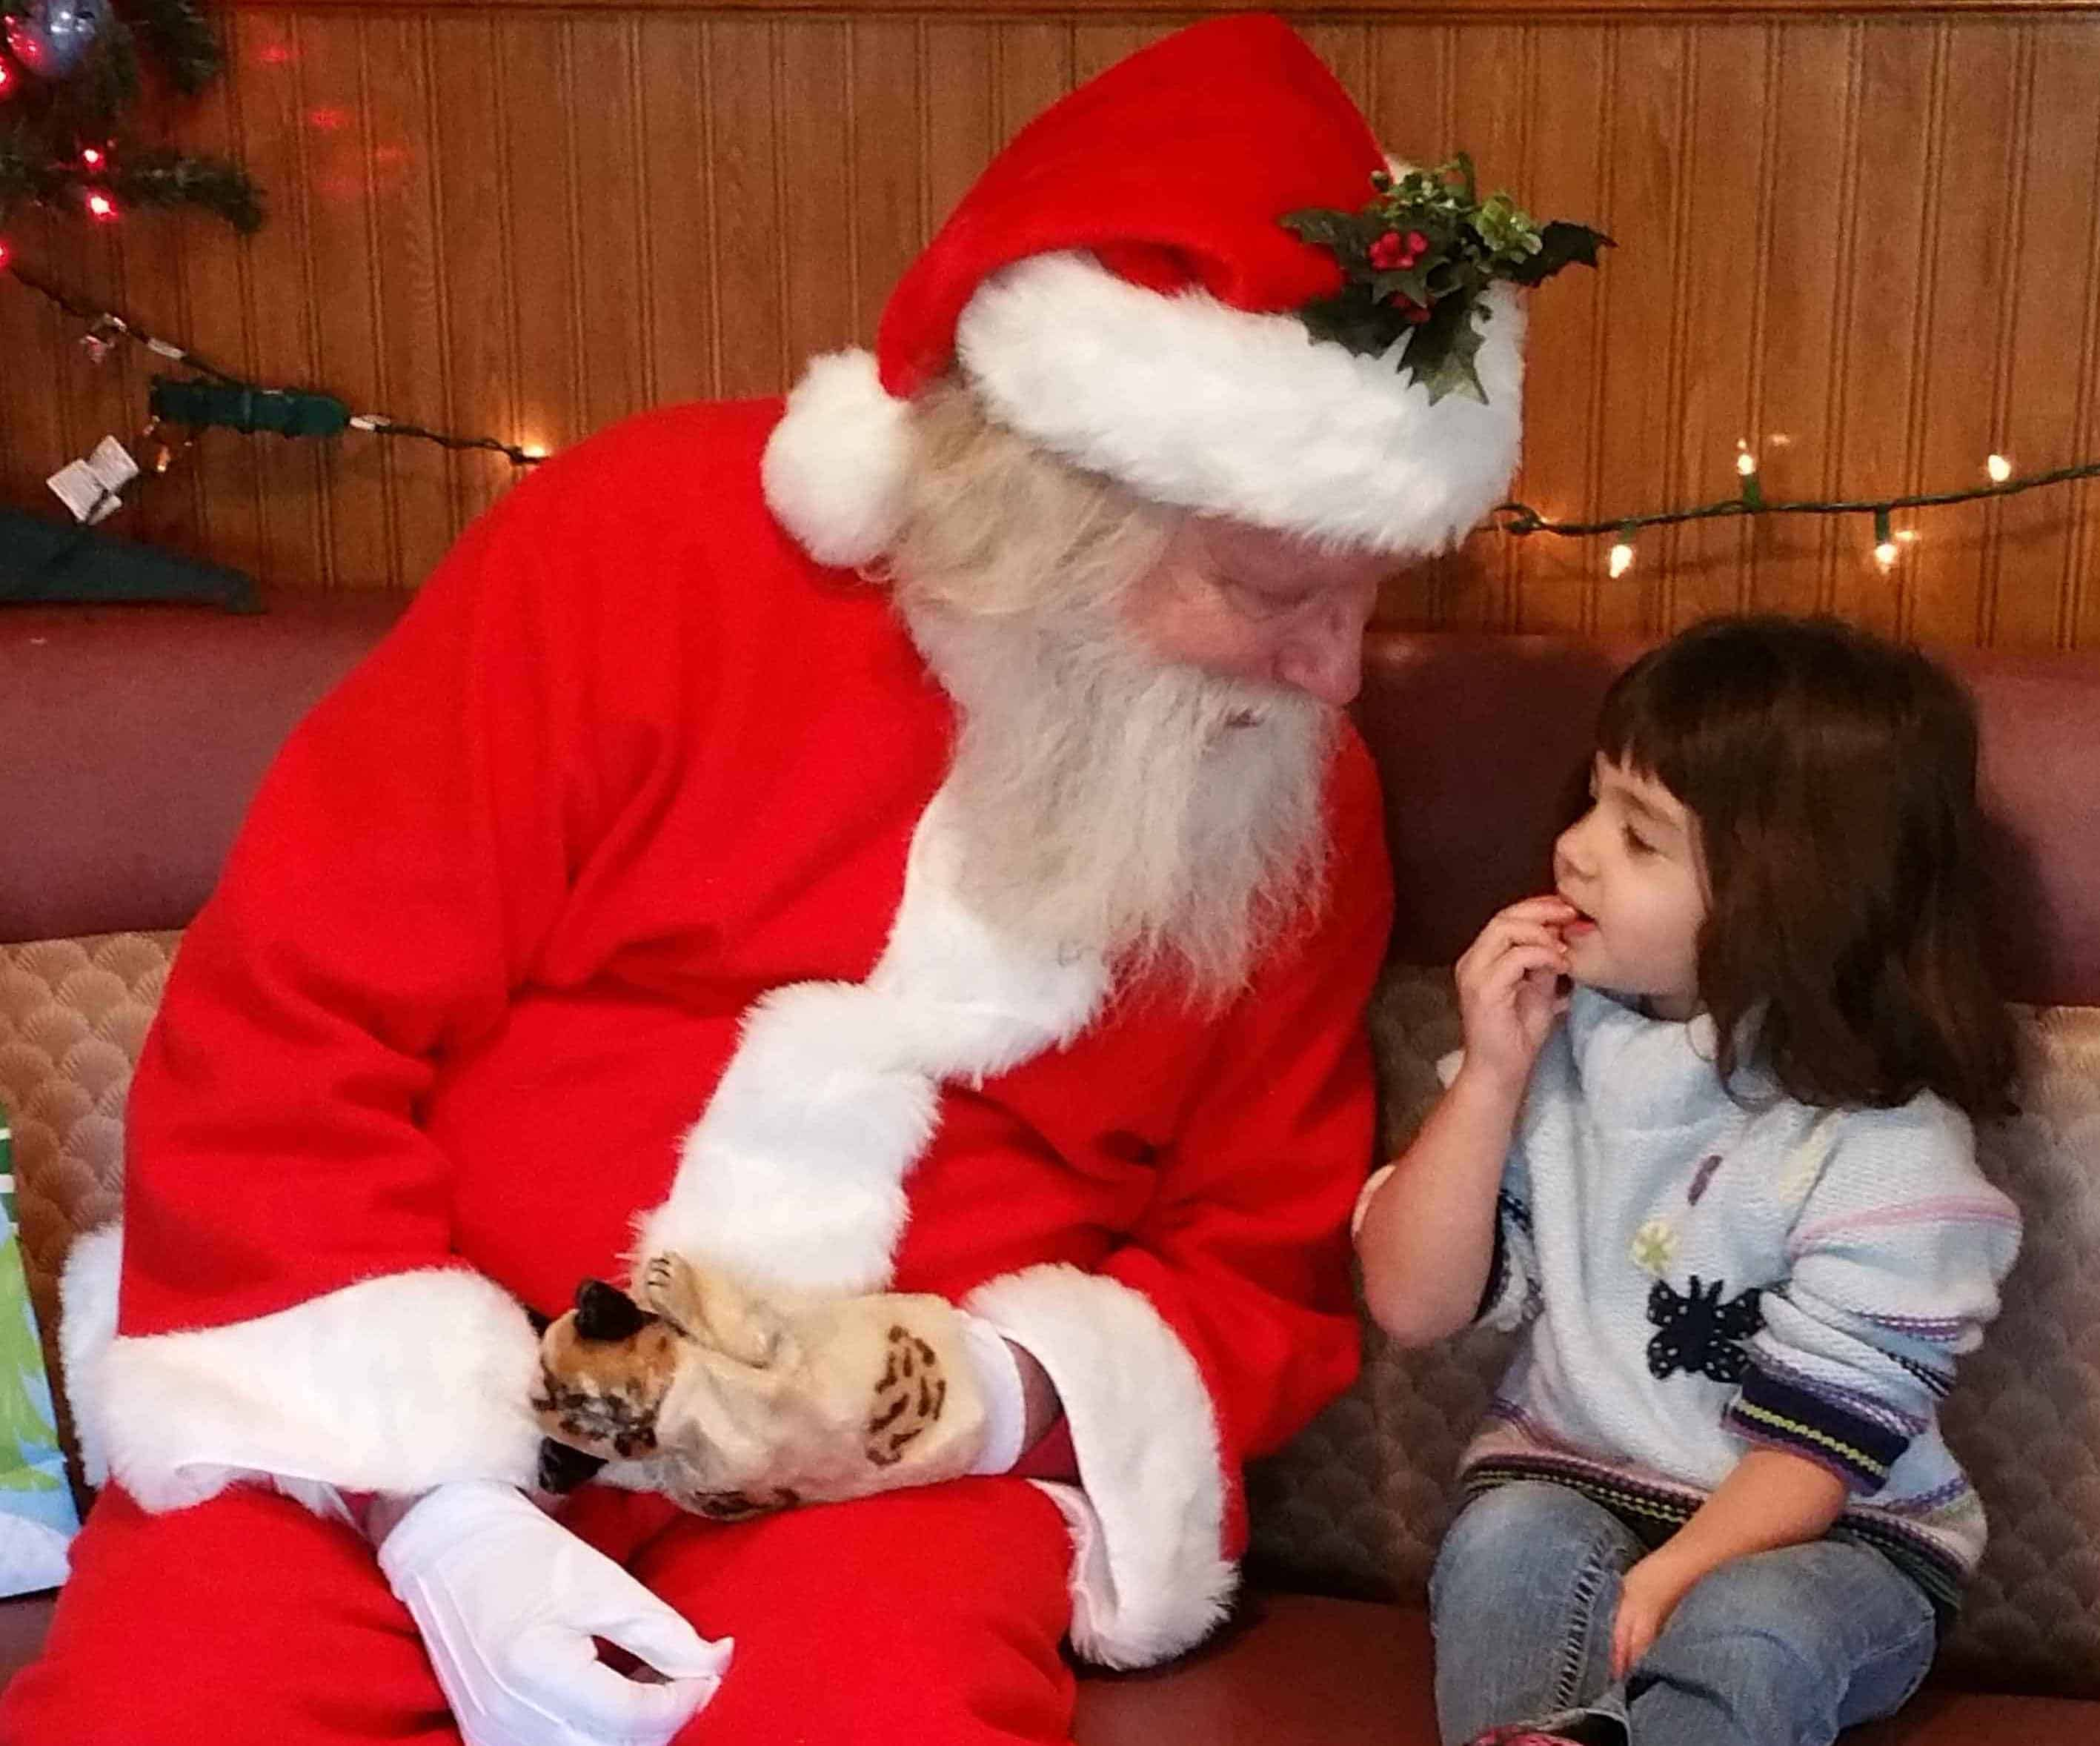 A child pauses to choose her words carefully while talking to Santa at the Highway Family Restaurant in Bushnell. (Photo by Shannon L. Price)